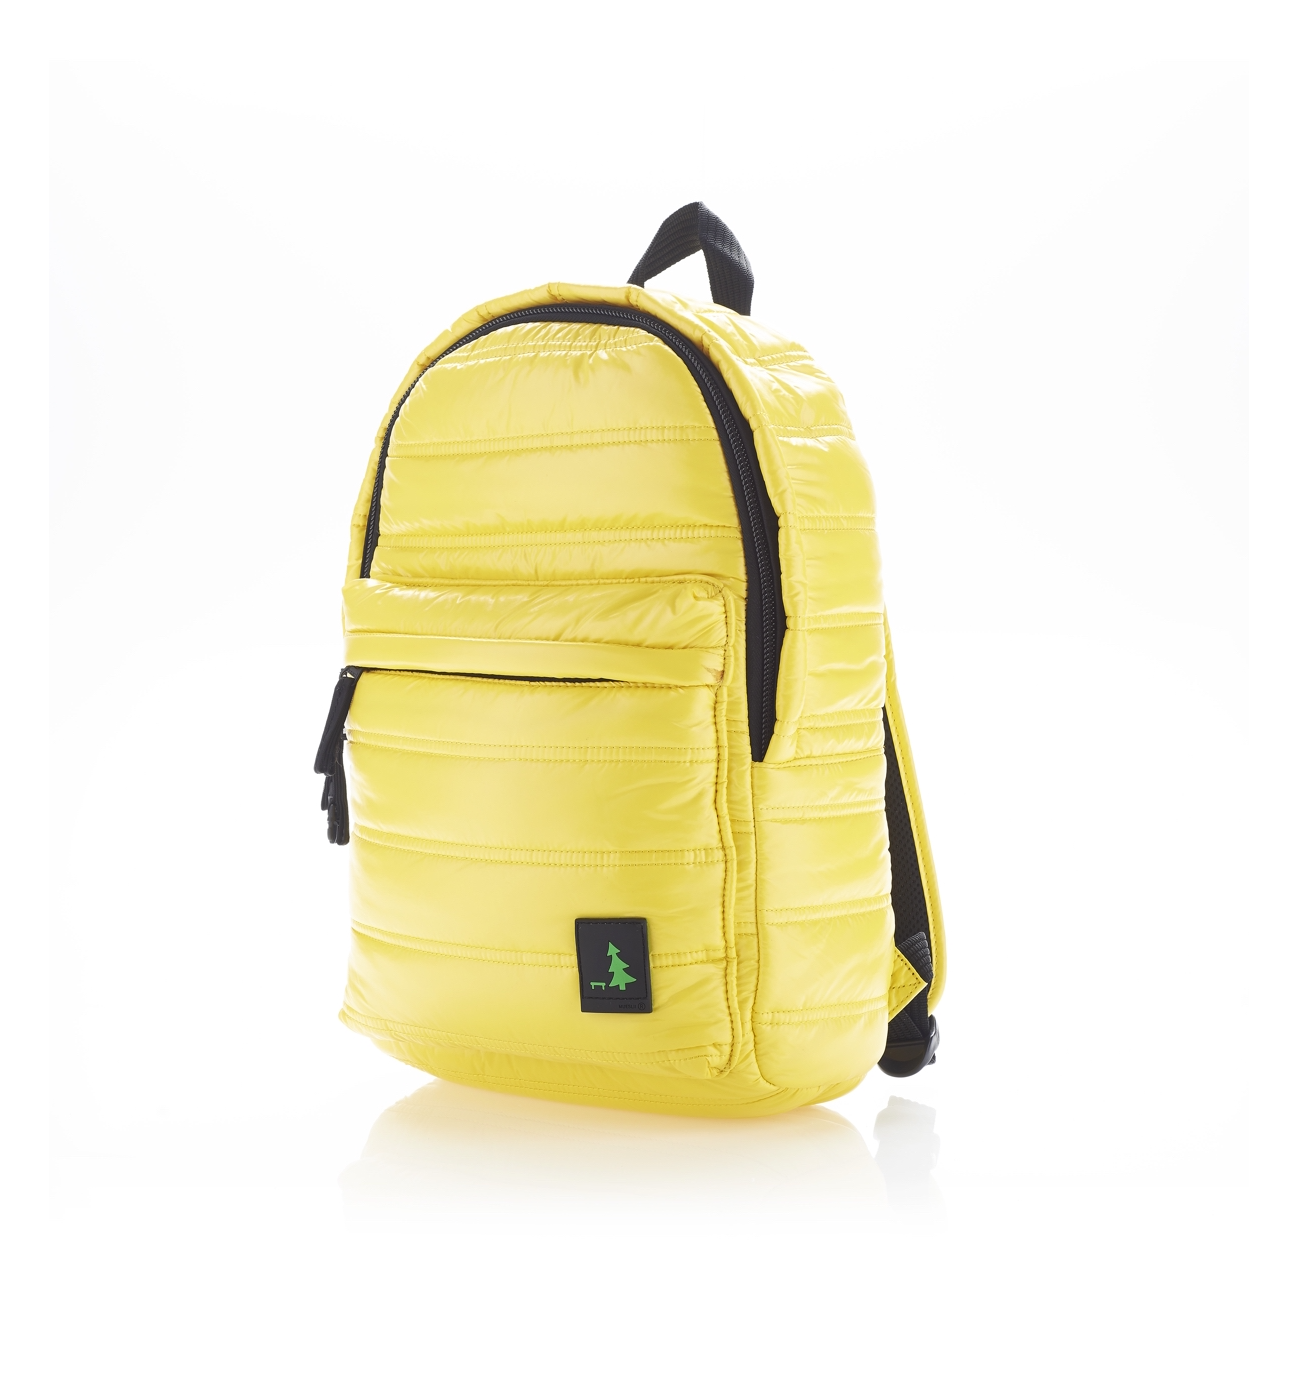 Mueslii bright yellow backpack